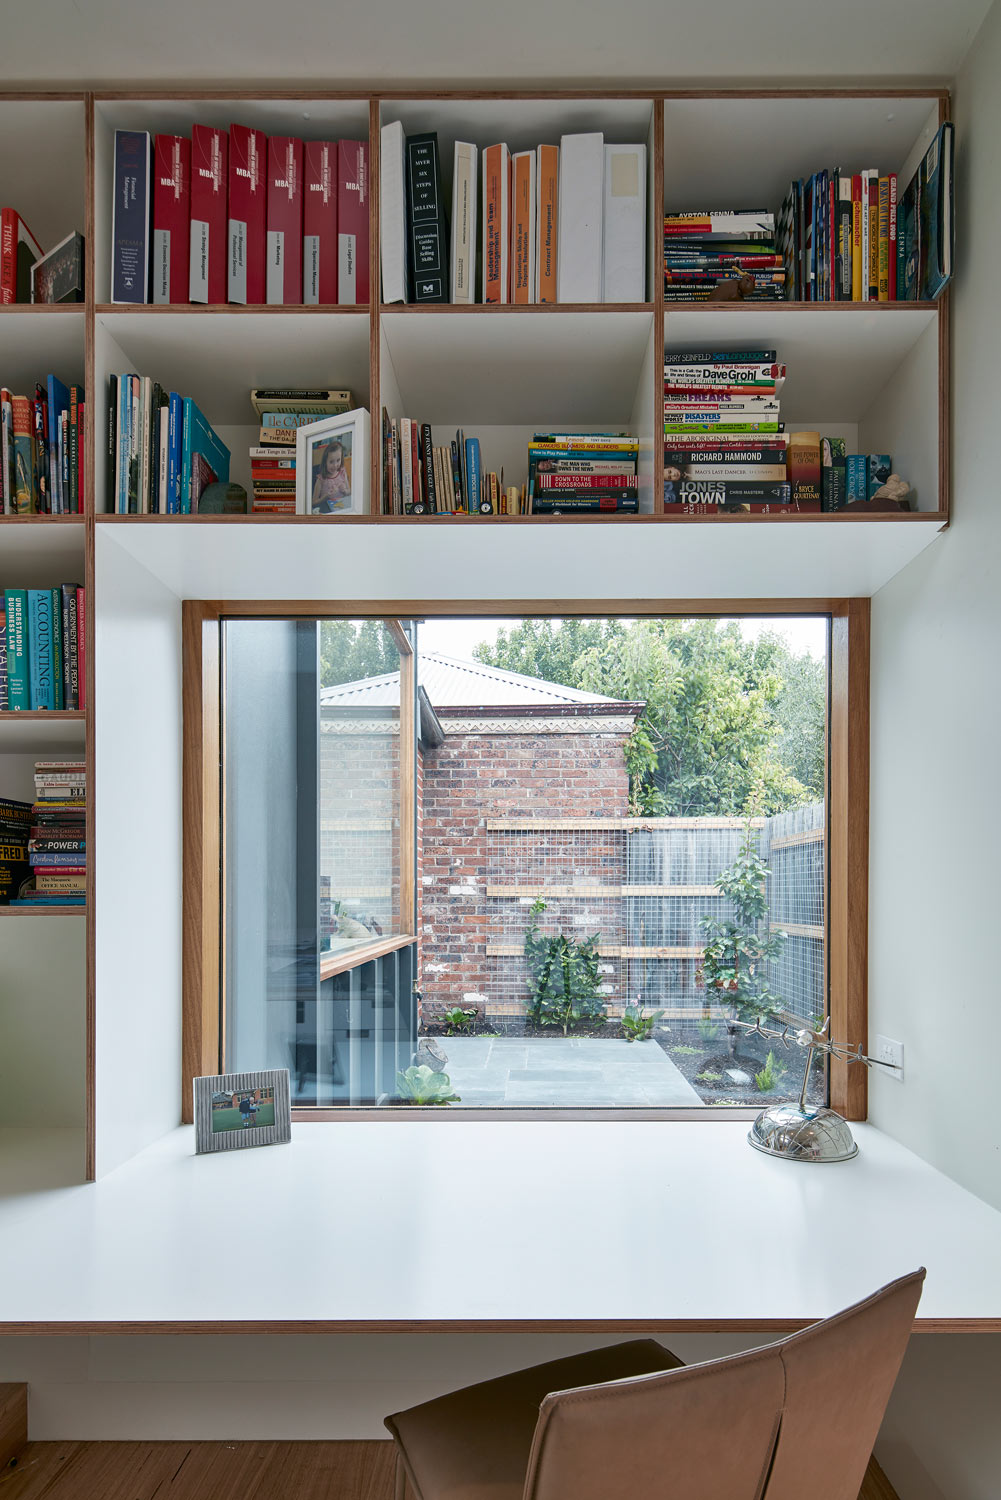 brighton-courtyard-house-renovation-by-warc-studio-08.jpg